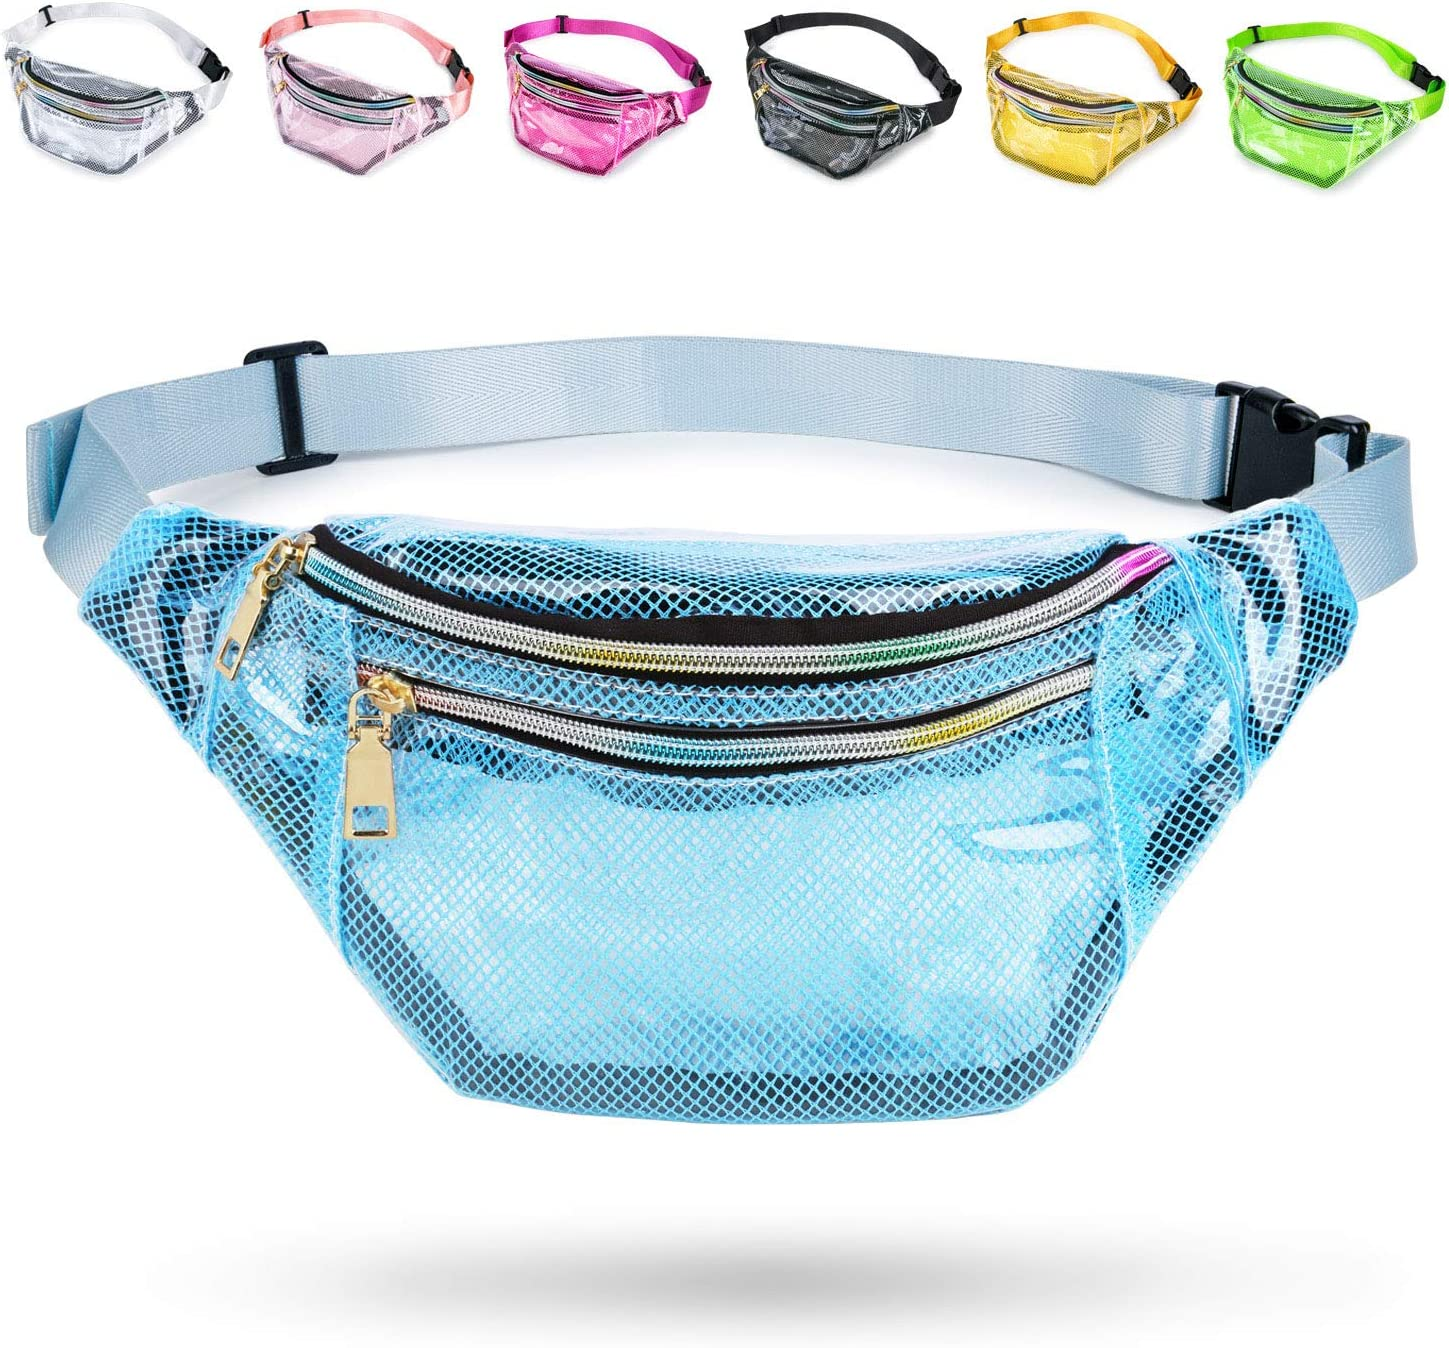 Men Weewooday Grid Clear Fanny Pack Clear Mesh Fanny Pack Waterproof Waist Fanny Pack with 2 Pouches and Adjustable Belt for Women Beach White, Green Travel Concert Bag